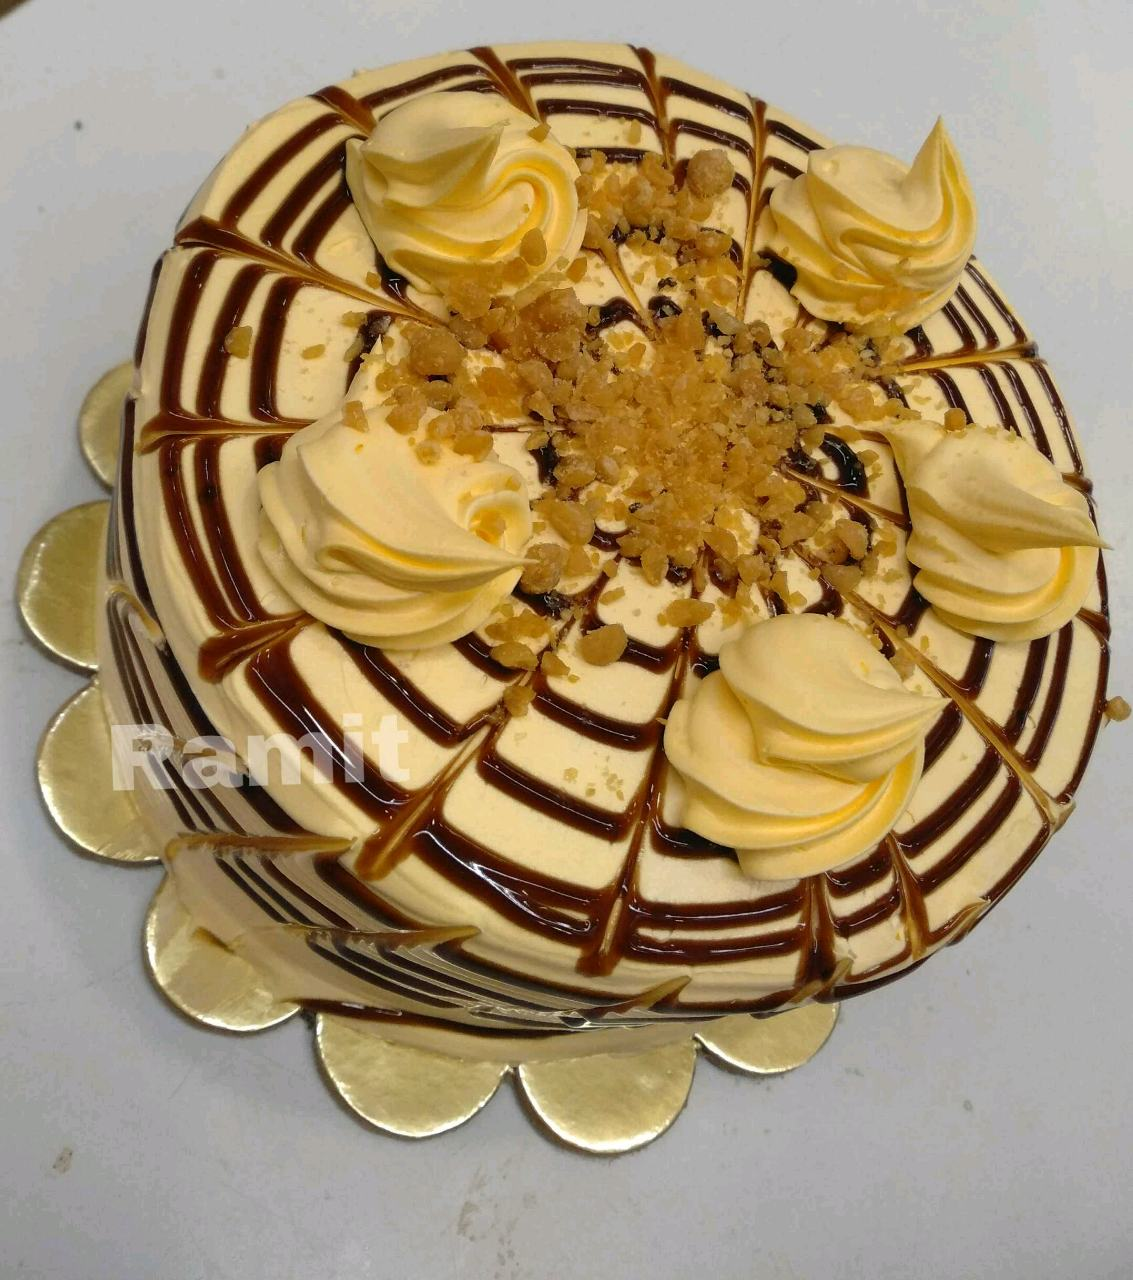 ButterScotch Cake With ButterScotch Frosting.....(Rich Royal Cake,Loaded With Butterscotch Chips)